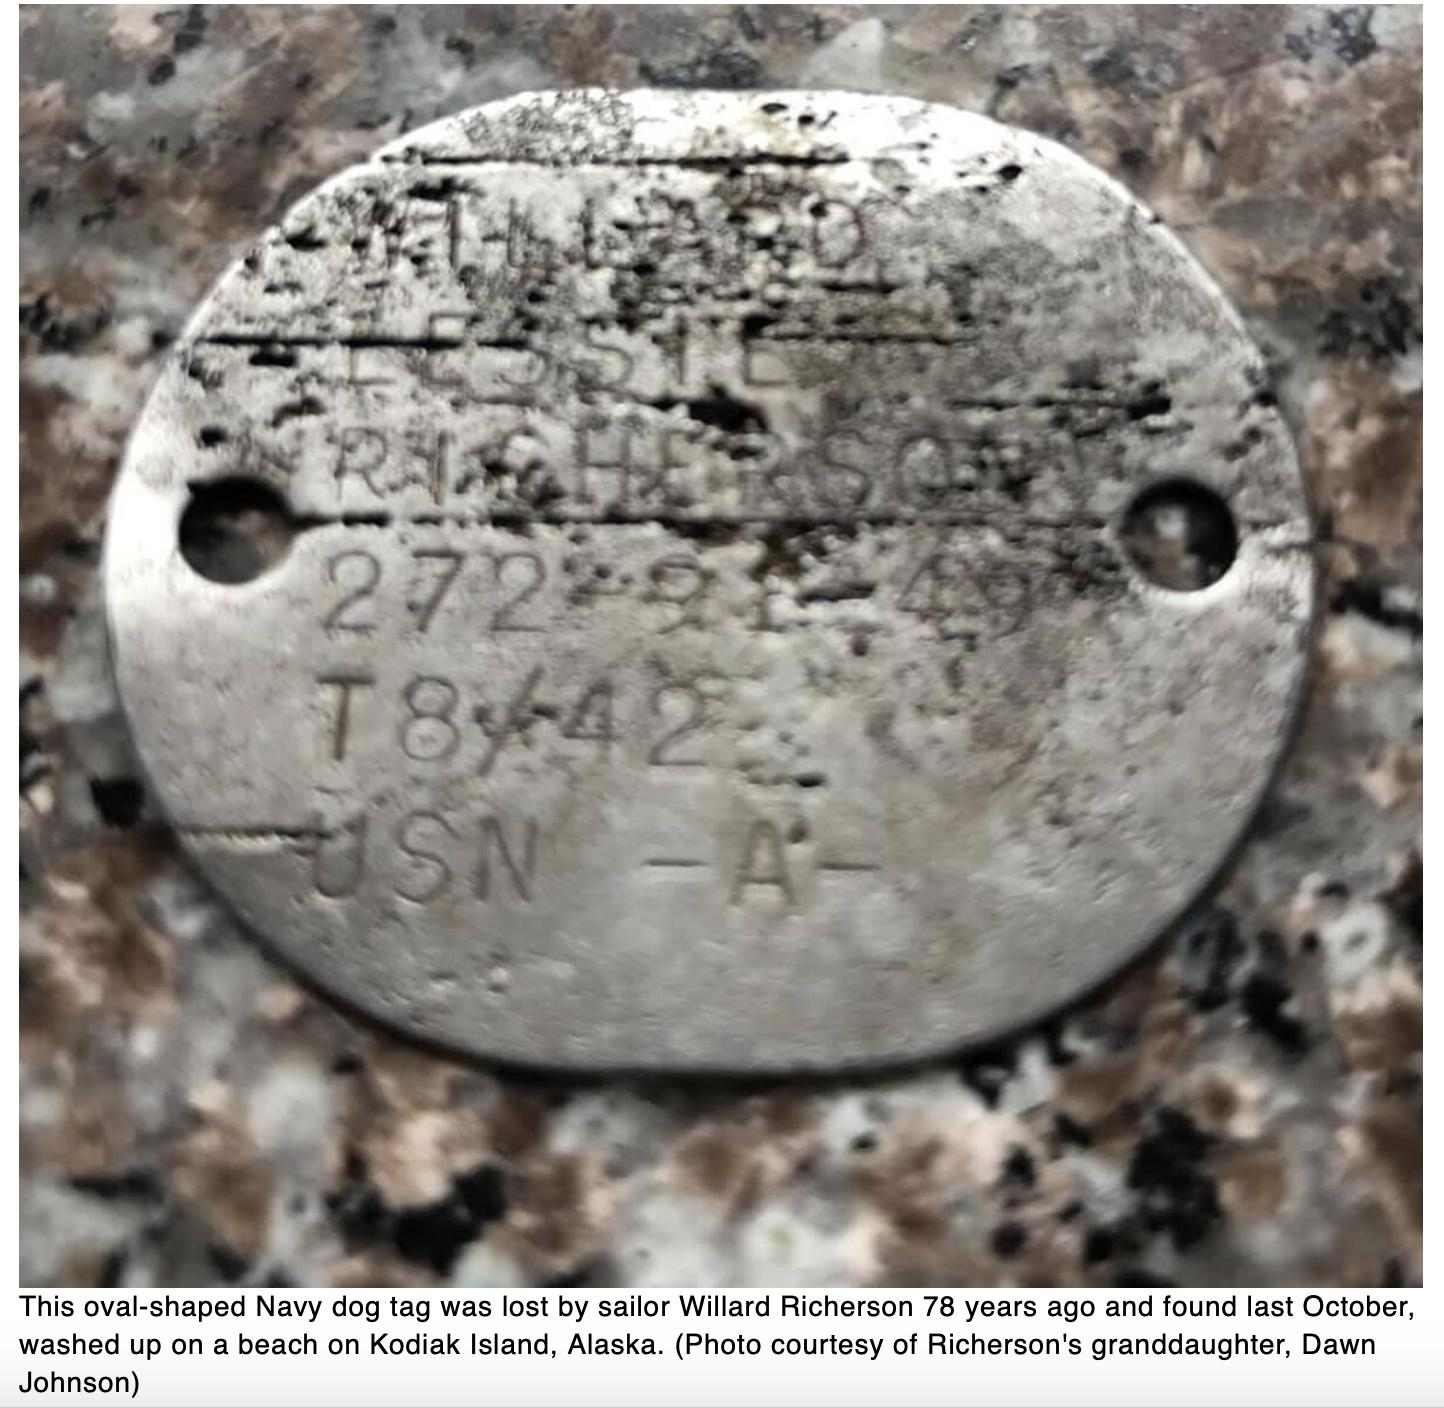 Woman hunting for sea glass in Alaska finds Navy dog tag lost during WWII